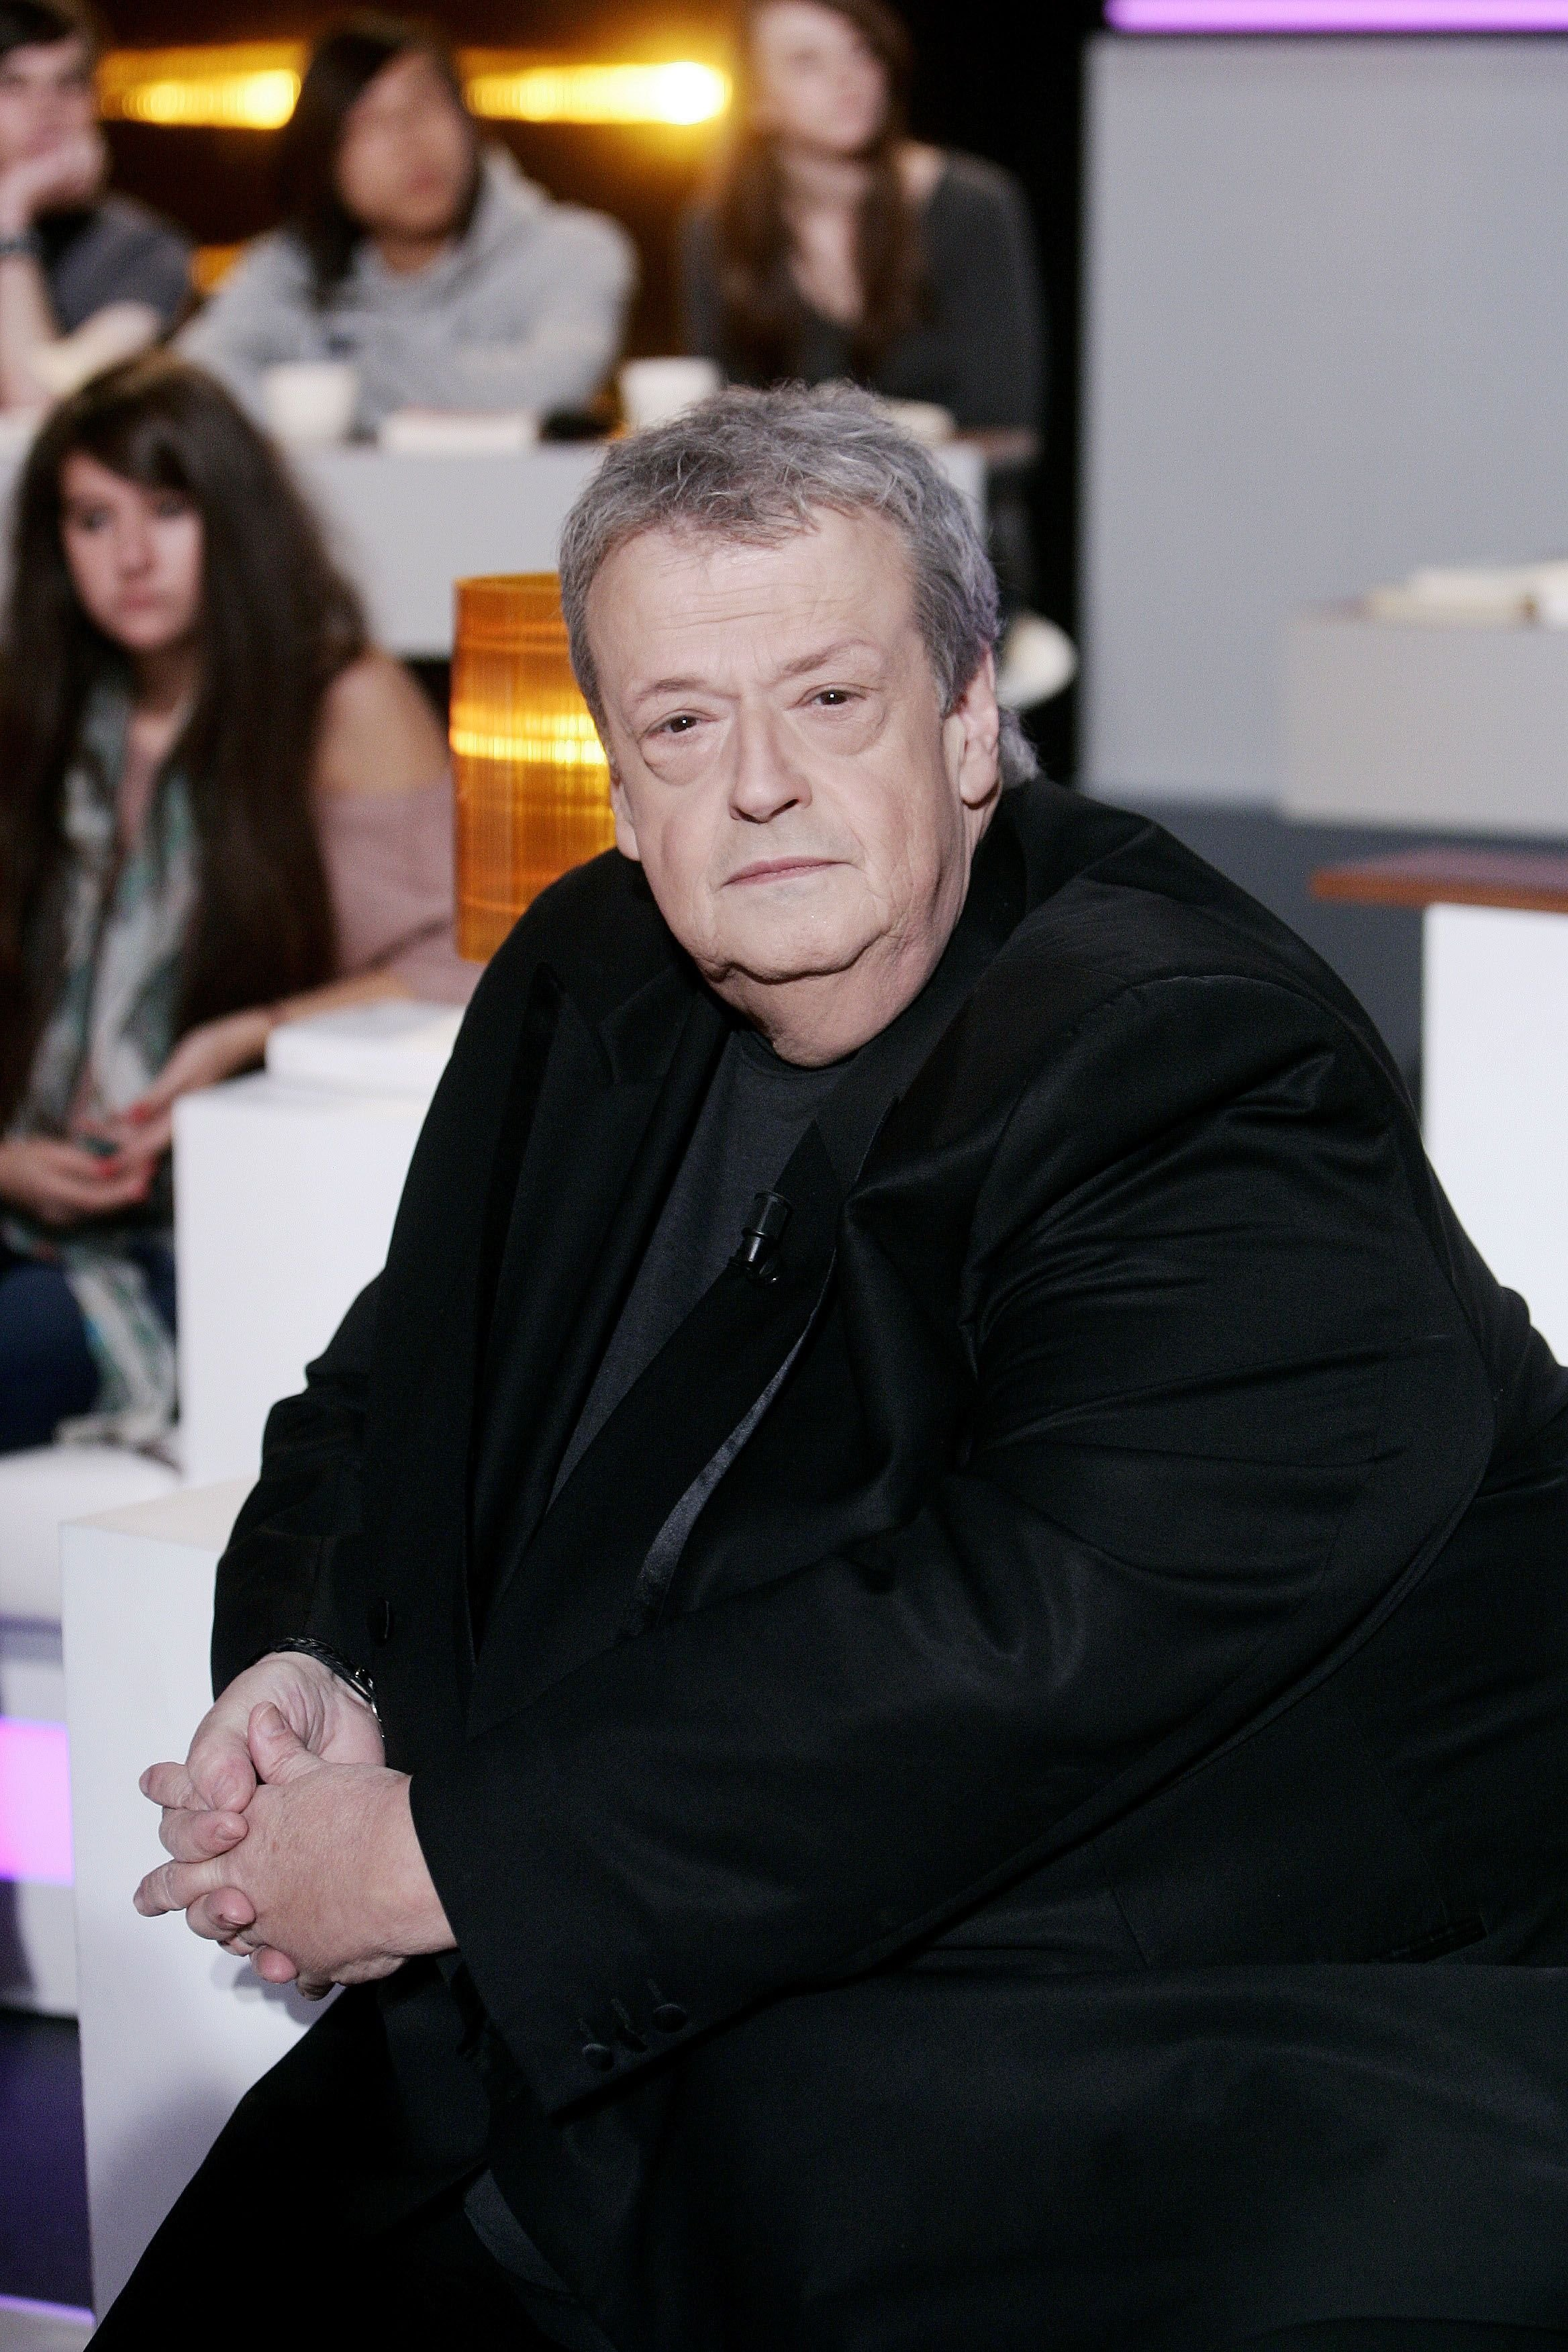 Guy Carlier participe à l'émission Au Field de la Nuit Tv à Paris, France, le 10 octobre 2011. | Photo : Getty Images